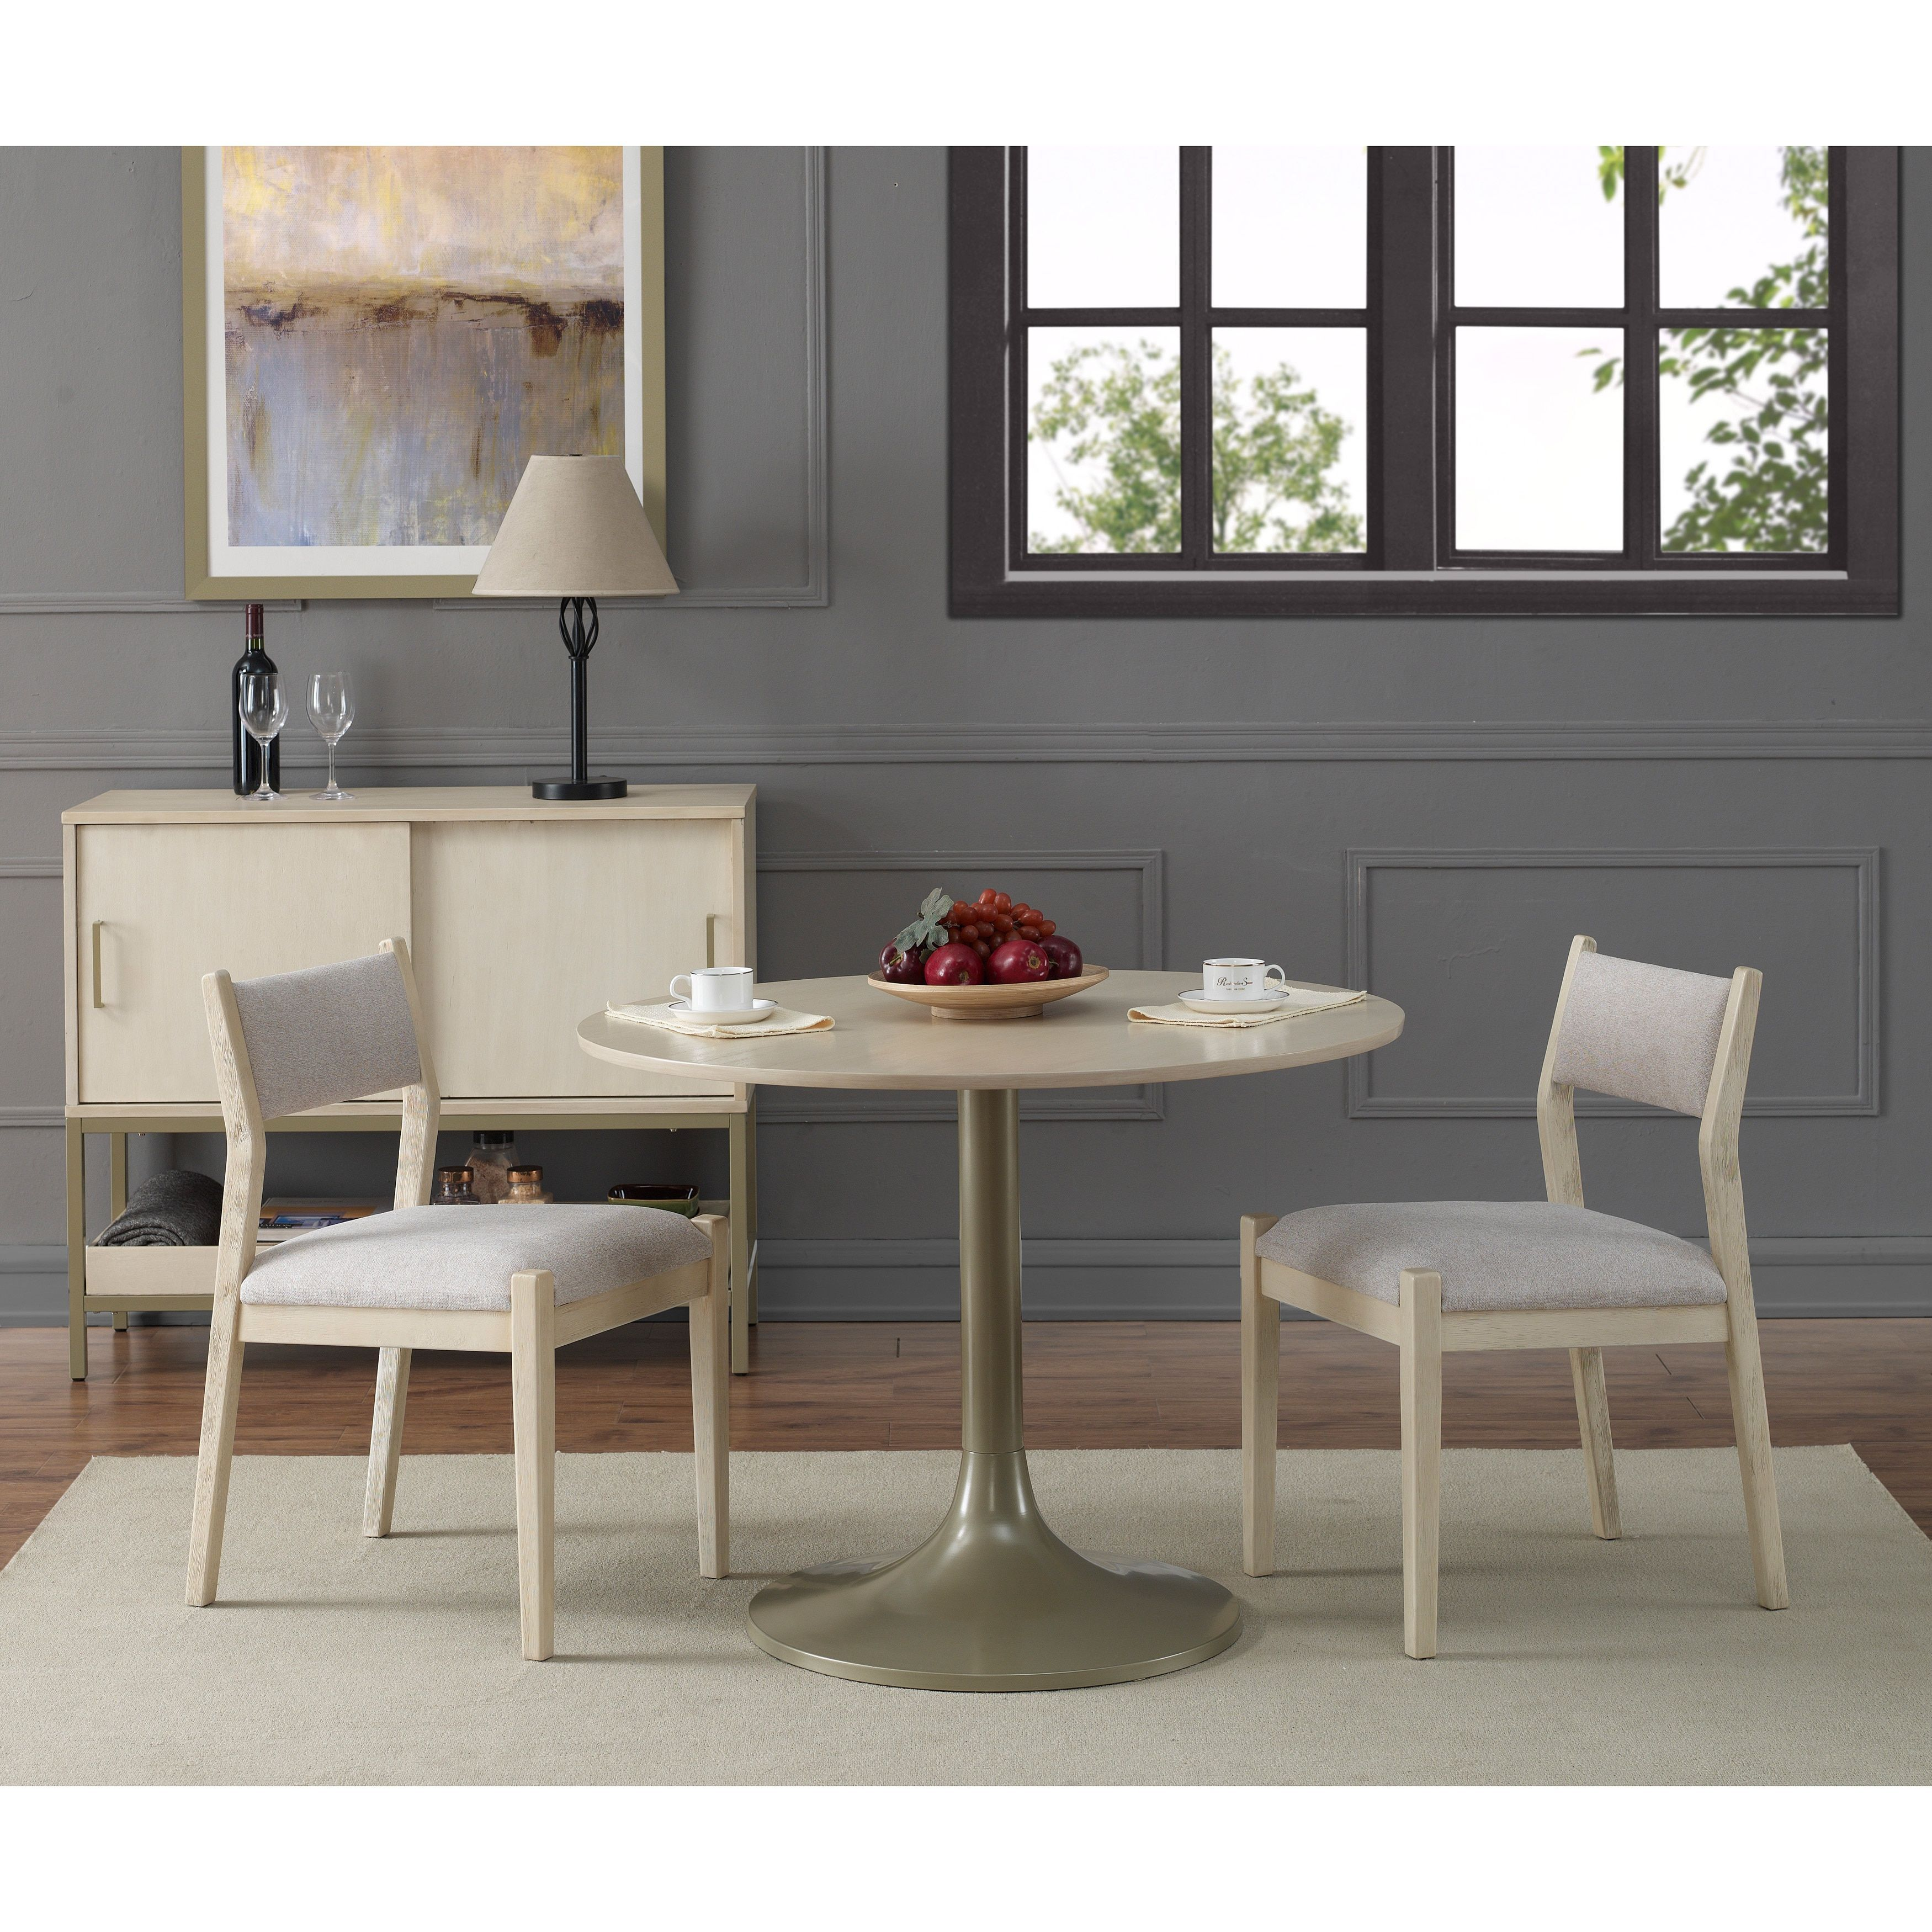 40-inch Moonlight Dining Table, Beige champagne